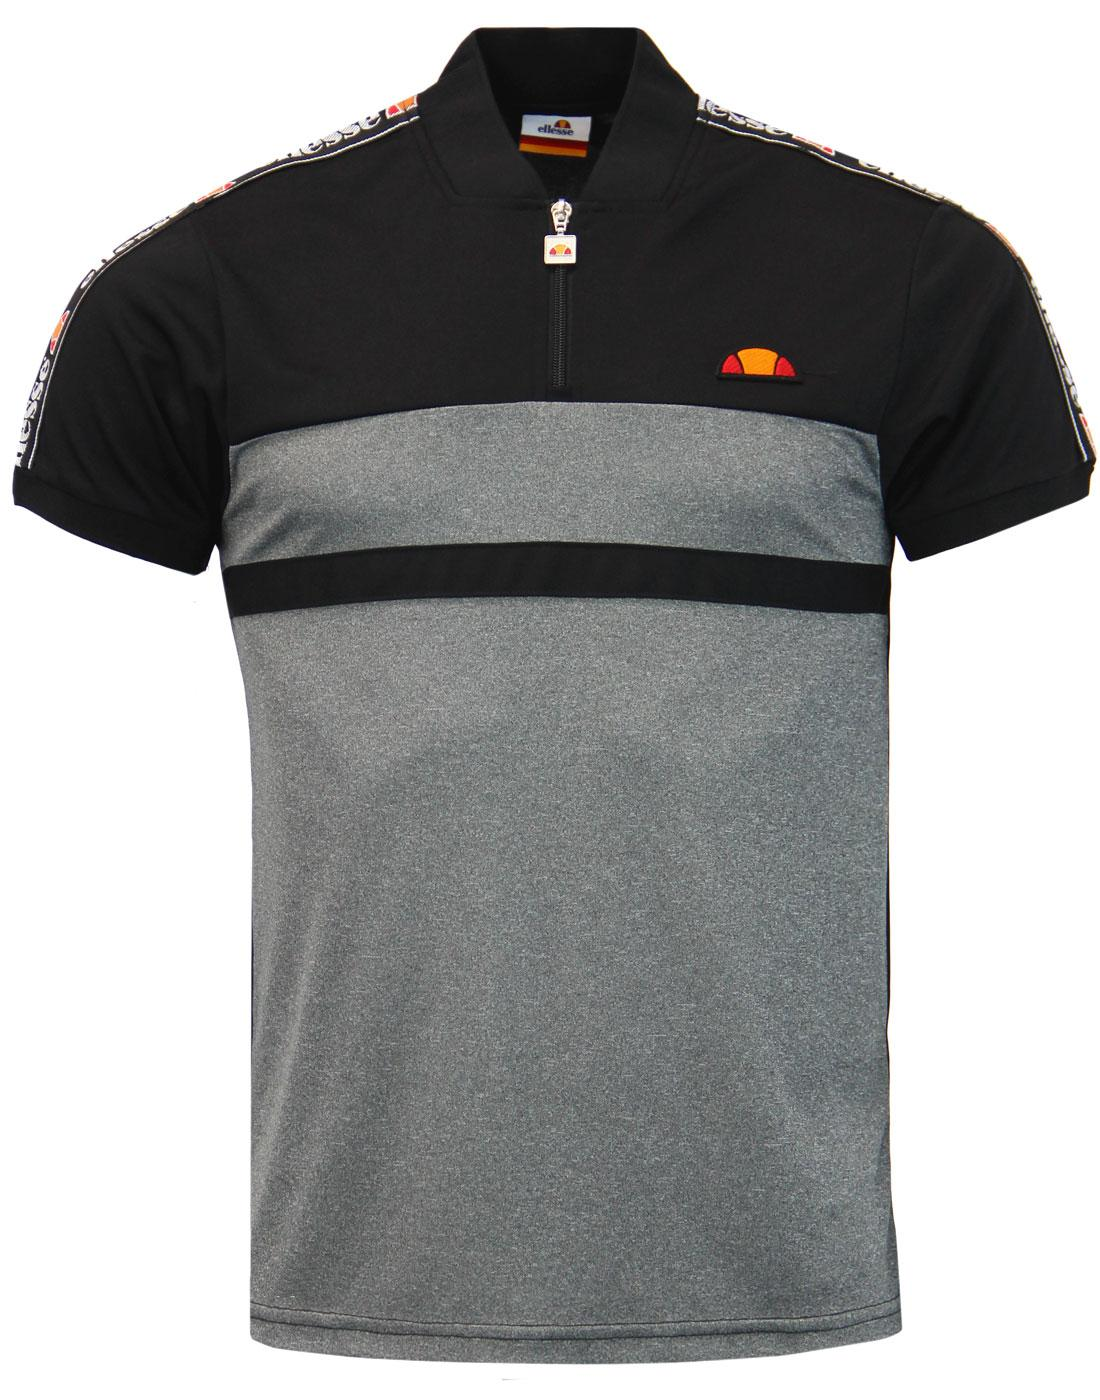 Gatlin ELLESSE Retro Sports Zip T-Shirt in Black